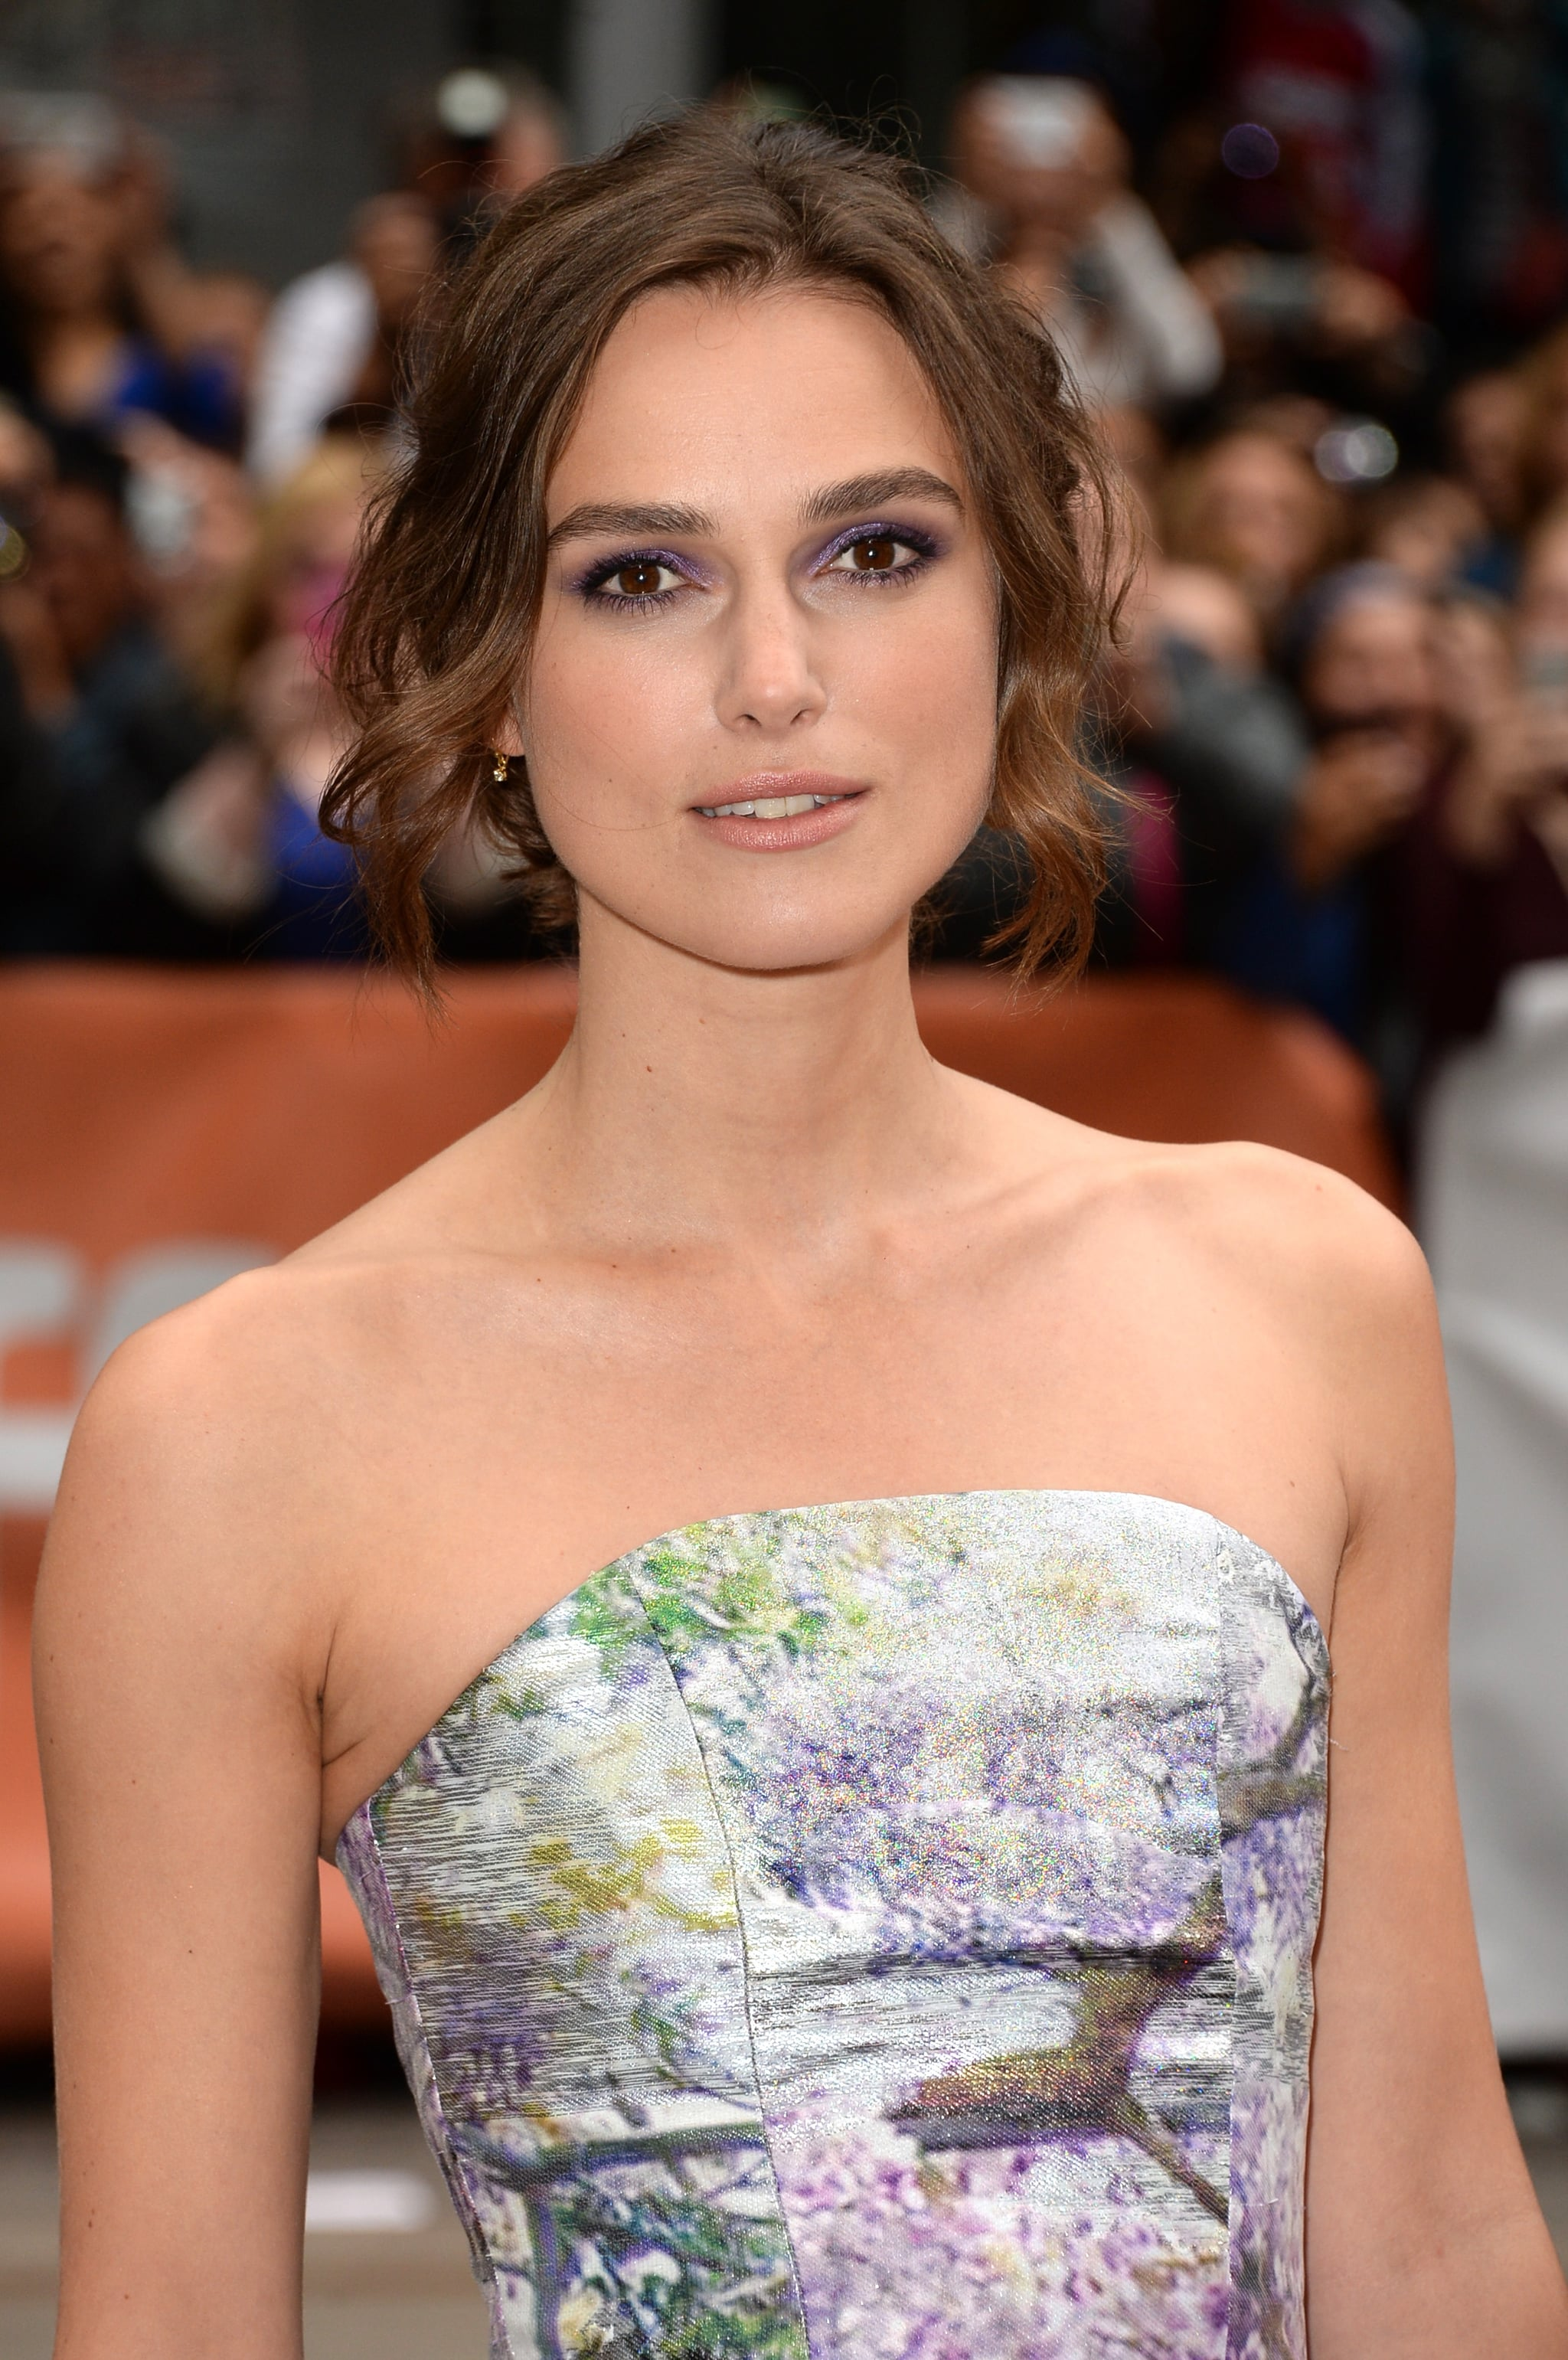 Keira Knightley chose a purple eye shadow to coordinate with her strapless frock at the Can a Song Save Your Life? premiere.